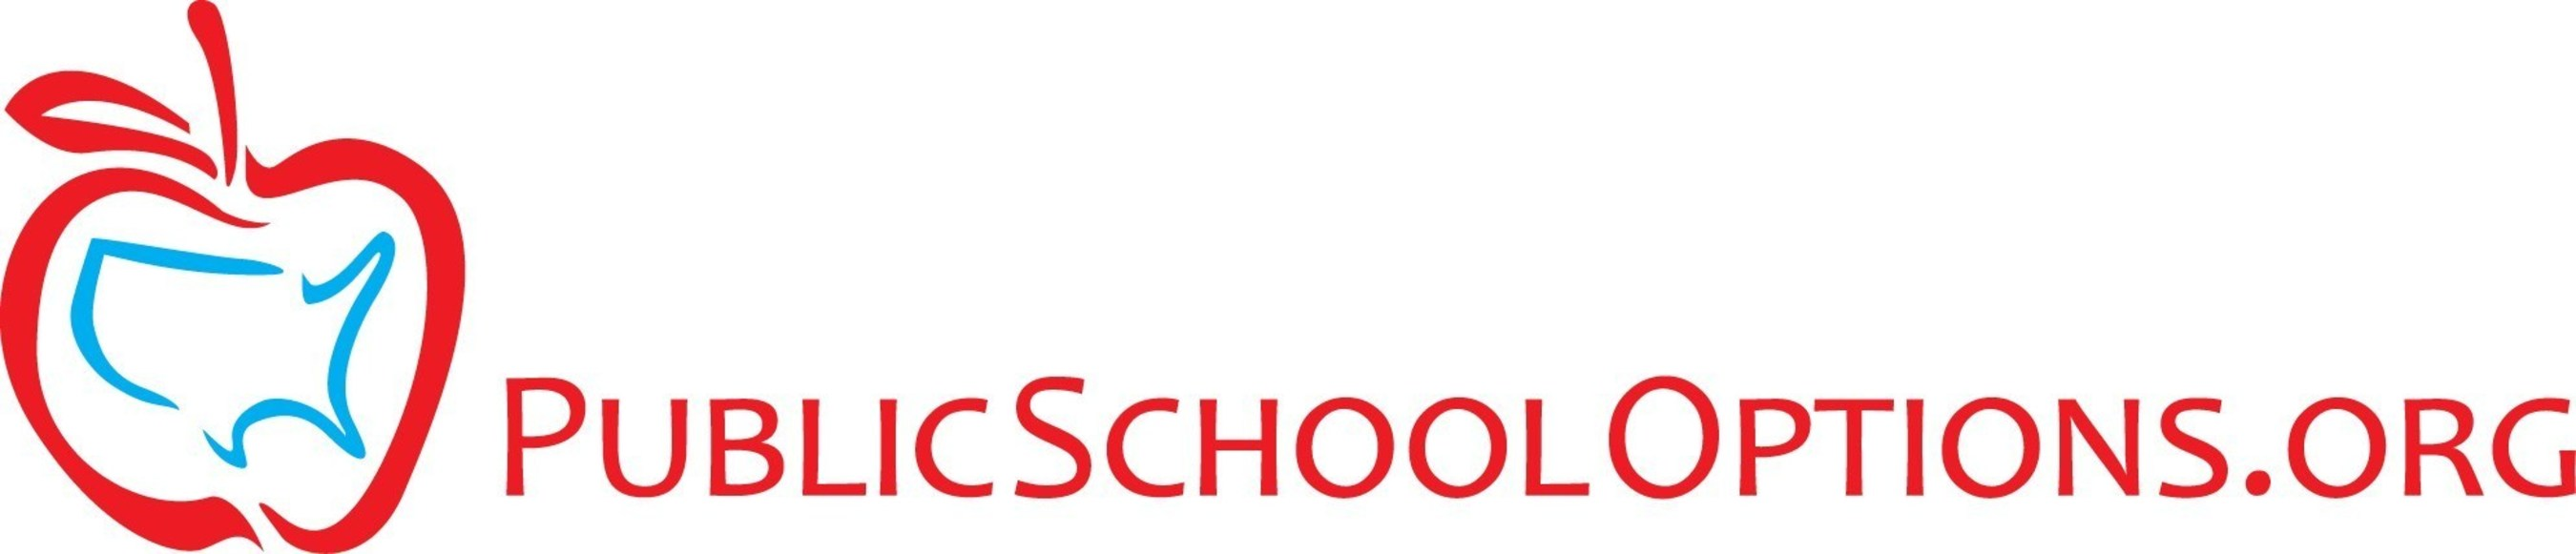 TNVA Litigant Families, PublicSchoolOptions.org Issue Statement in Response to Court Ruling to Keep School Open